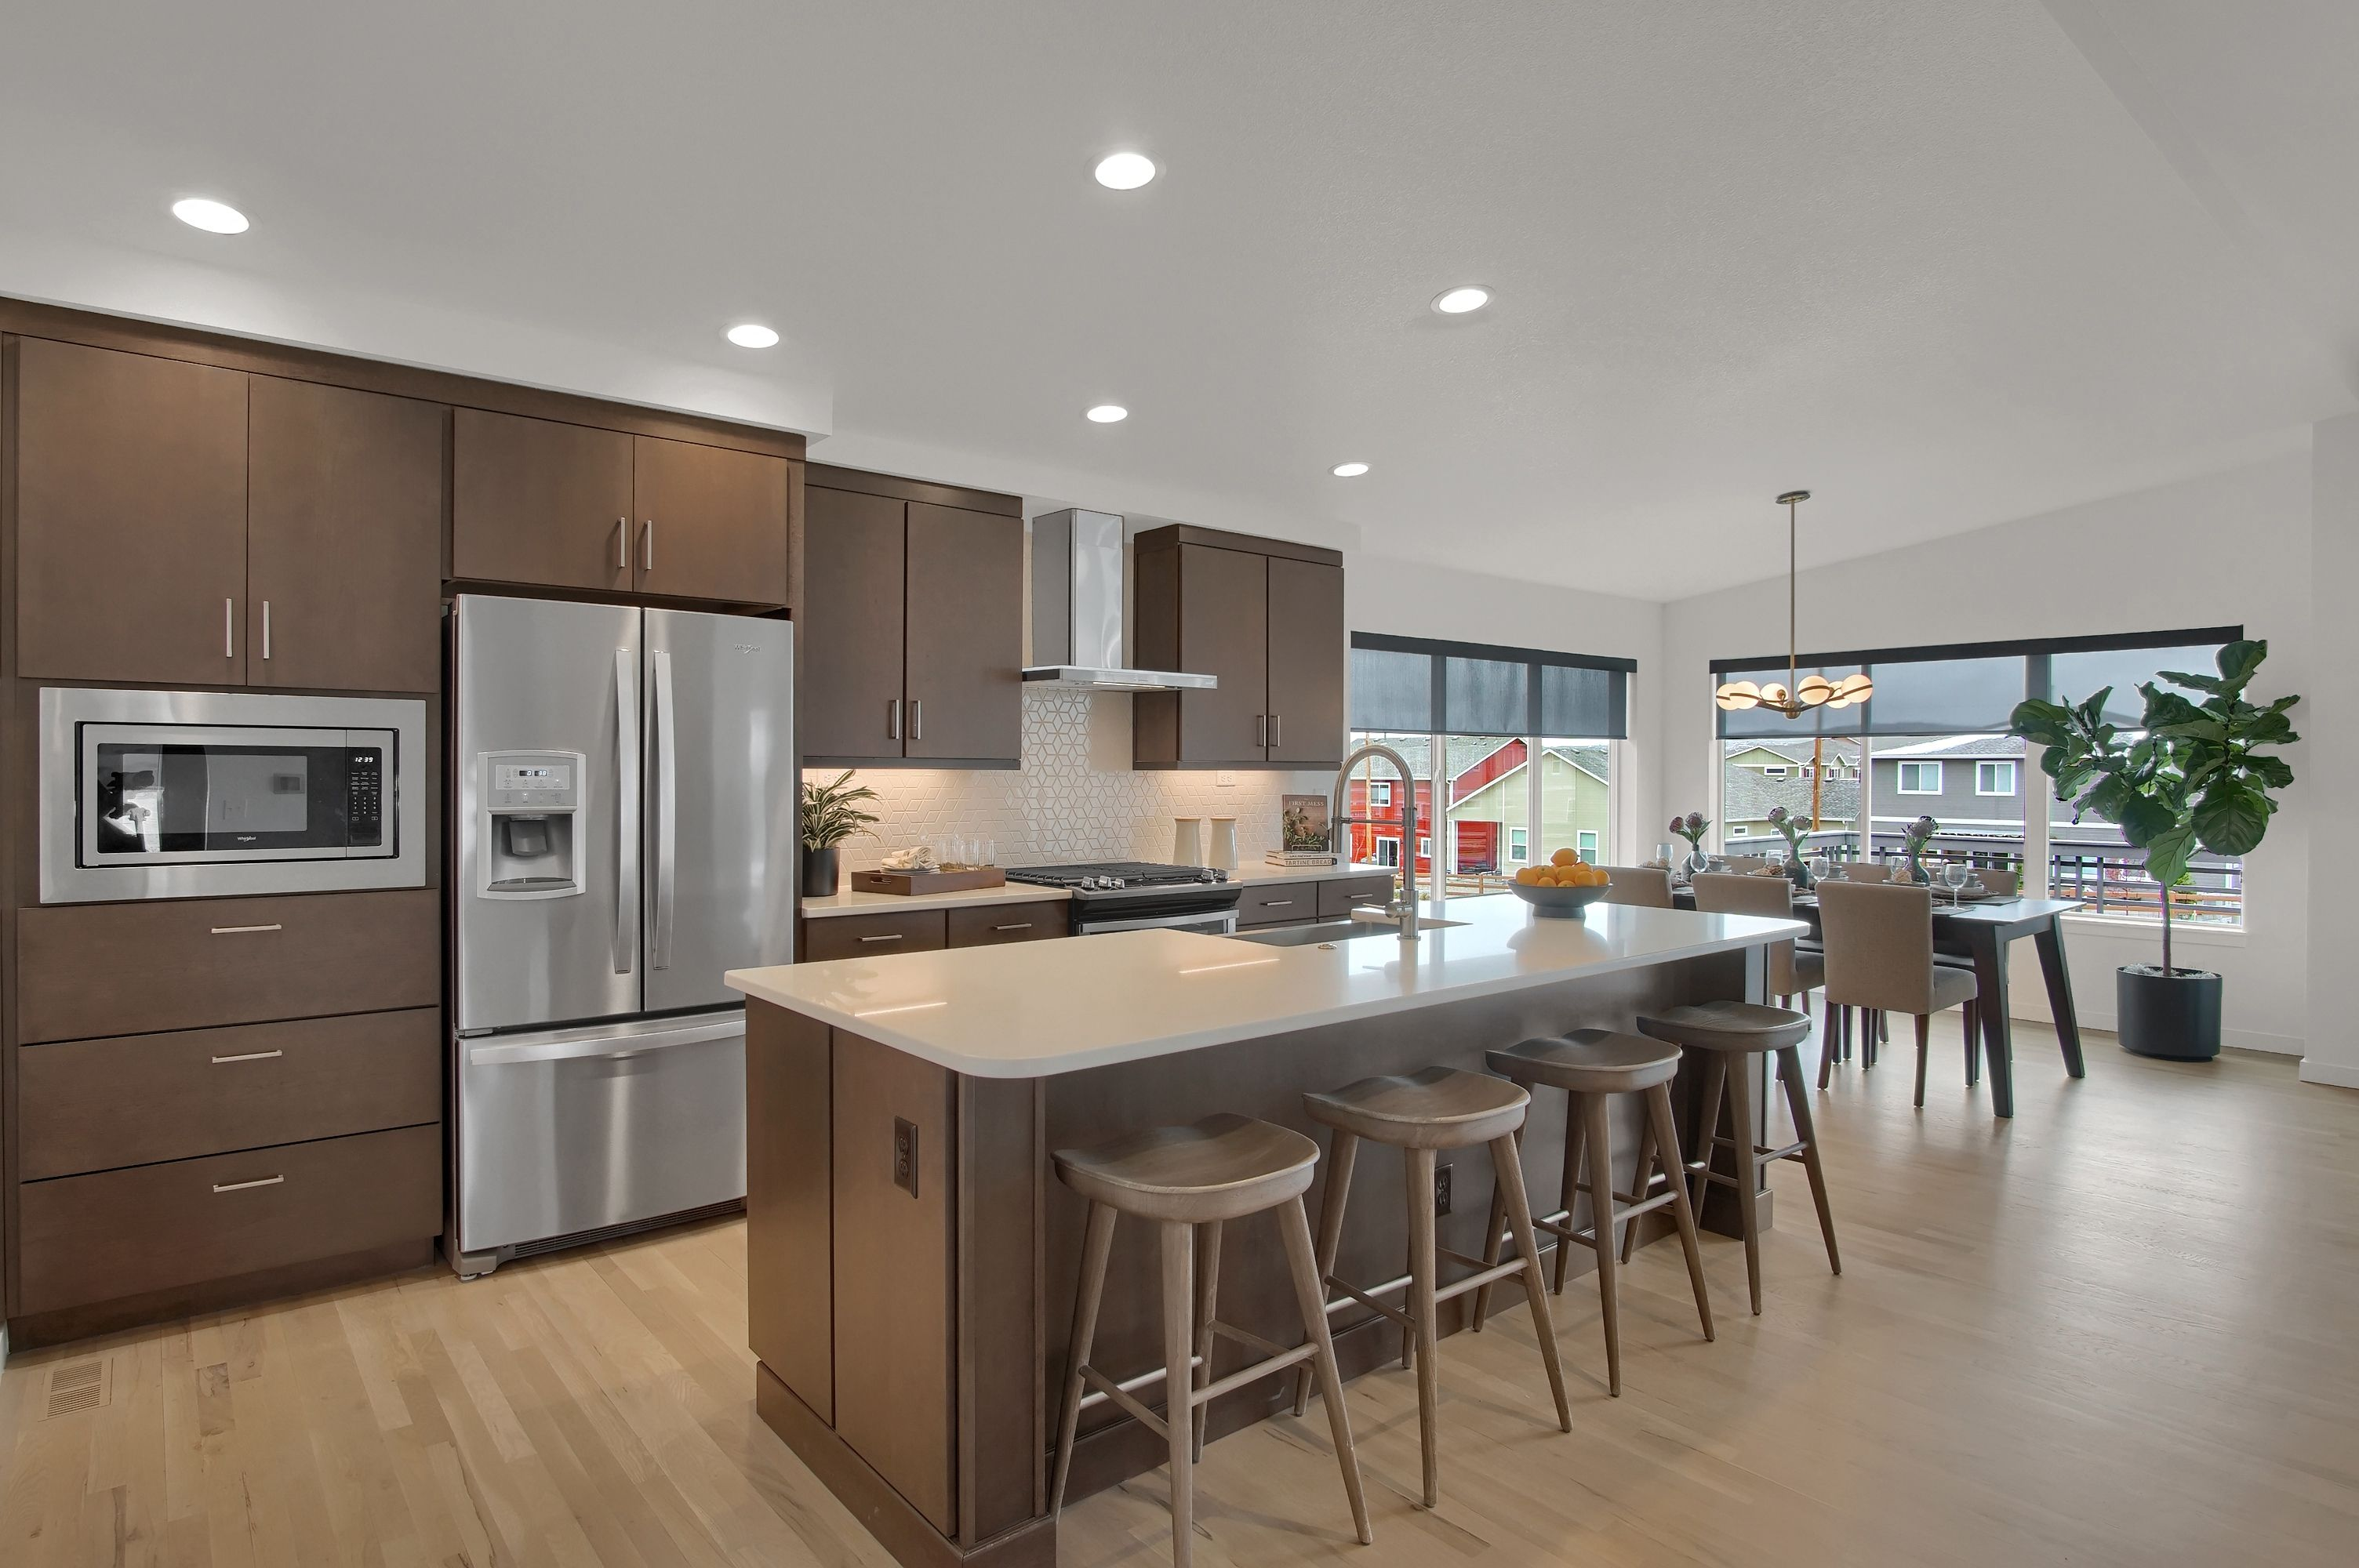 Kitchen featured in the Vineyard By Keller Homes, A Toll Bros. Co. in Colorado Springs, CO